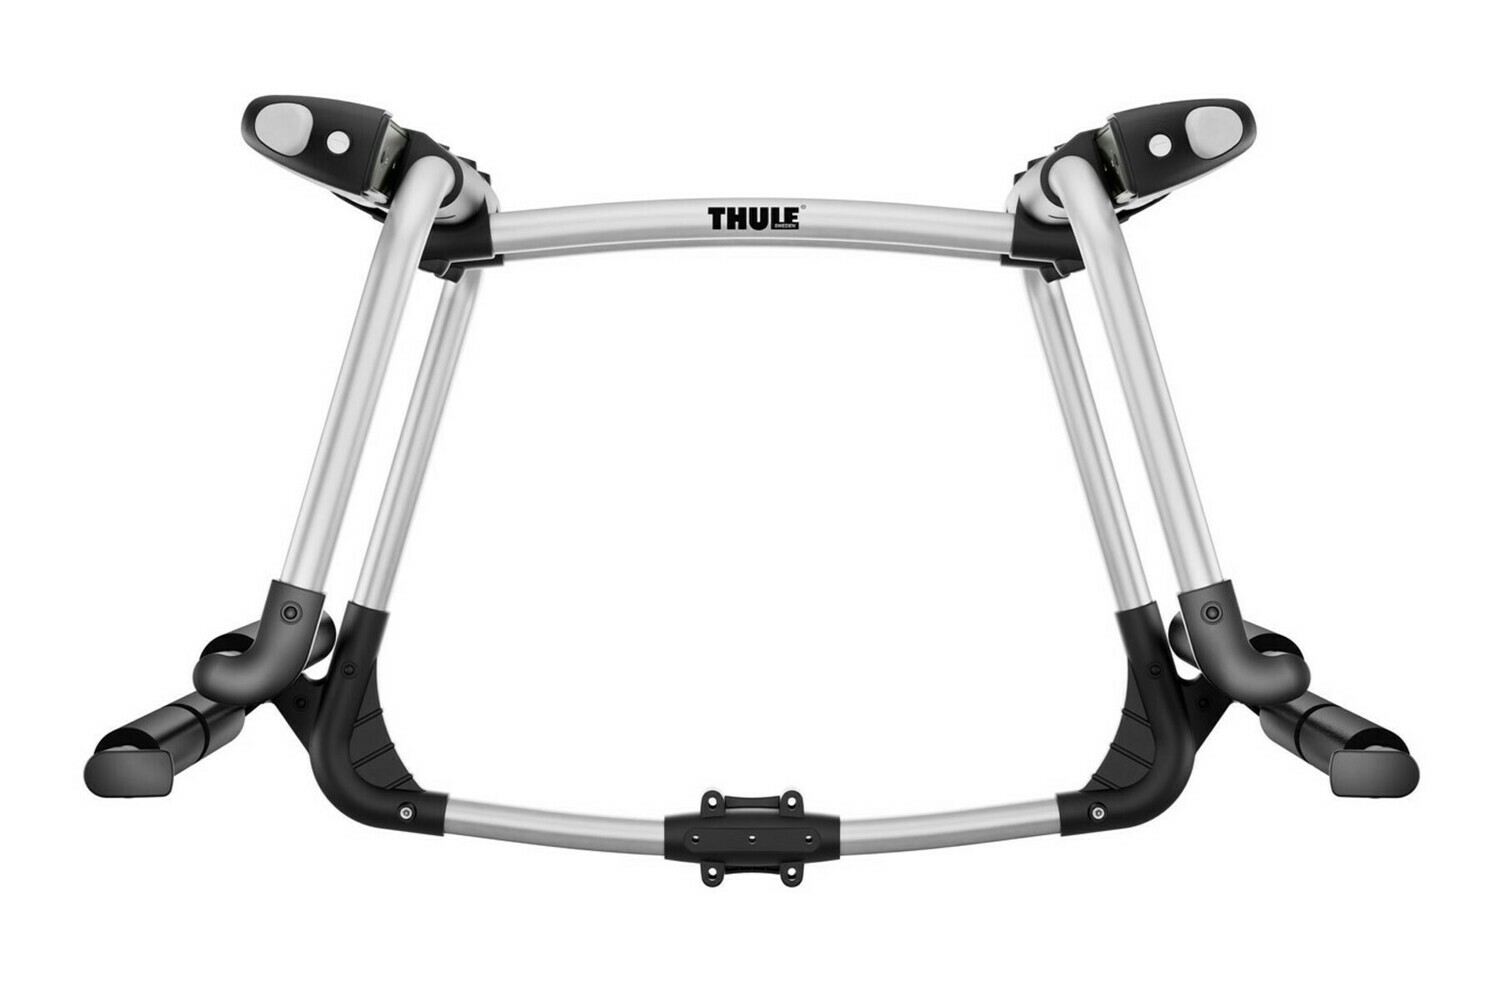 Thule 'TRAM' Adaptor for Bike Rack to Hold Skis & Snowboards